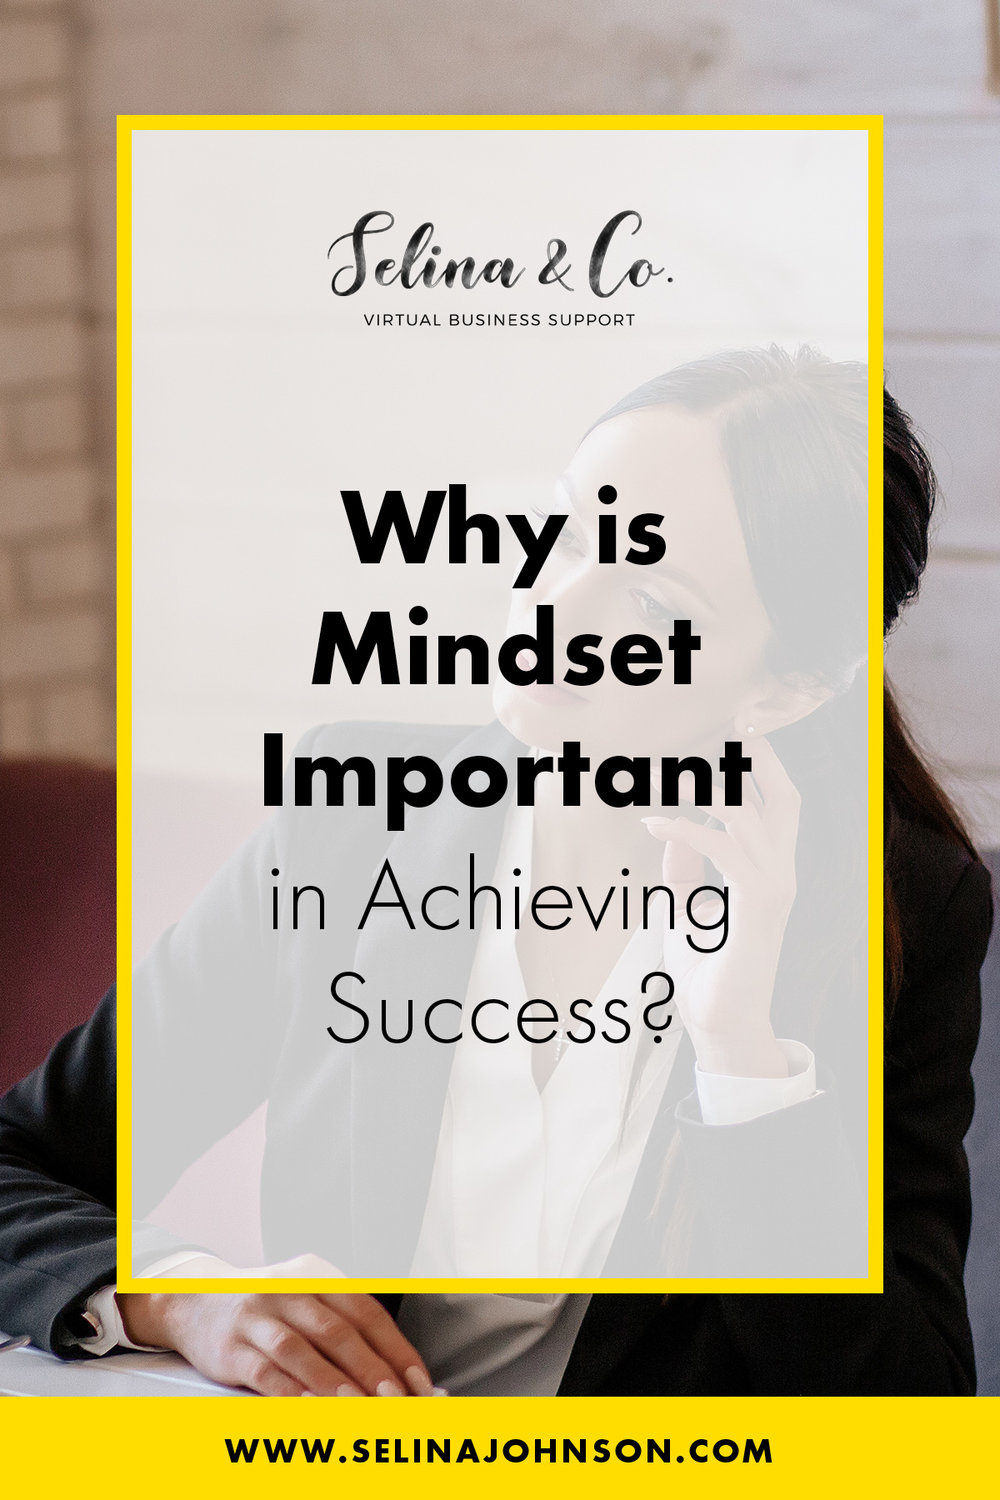 why-is-mindset-important-in-achieving-success-pinterest.jpg